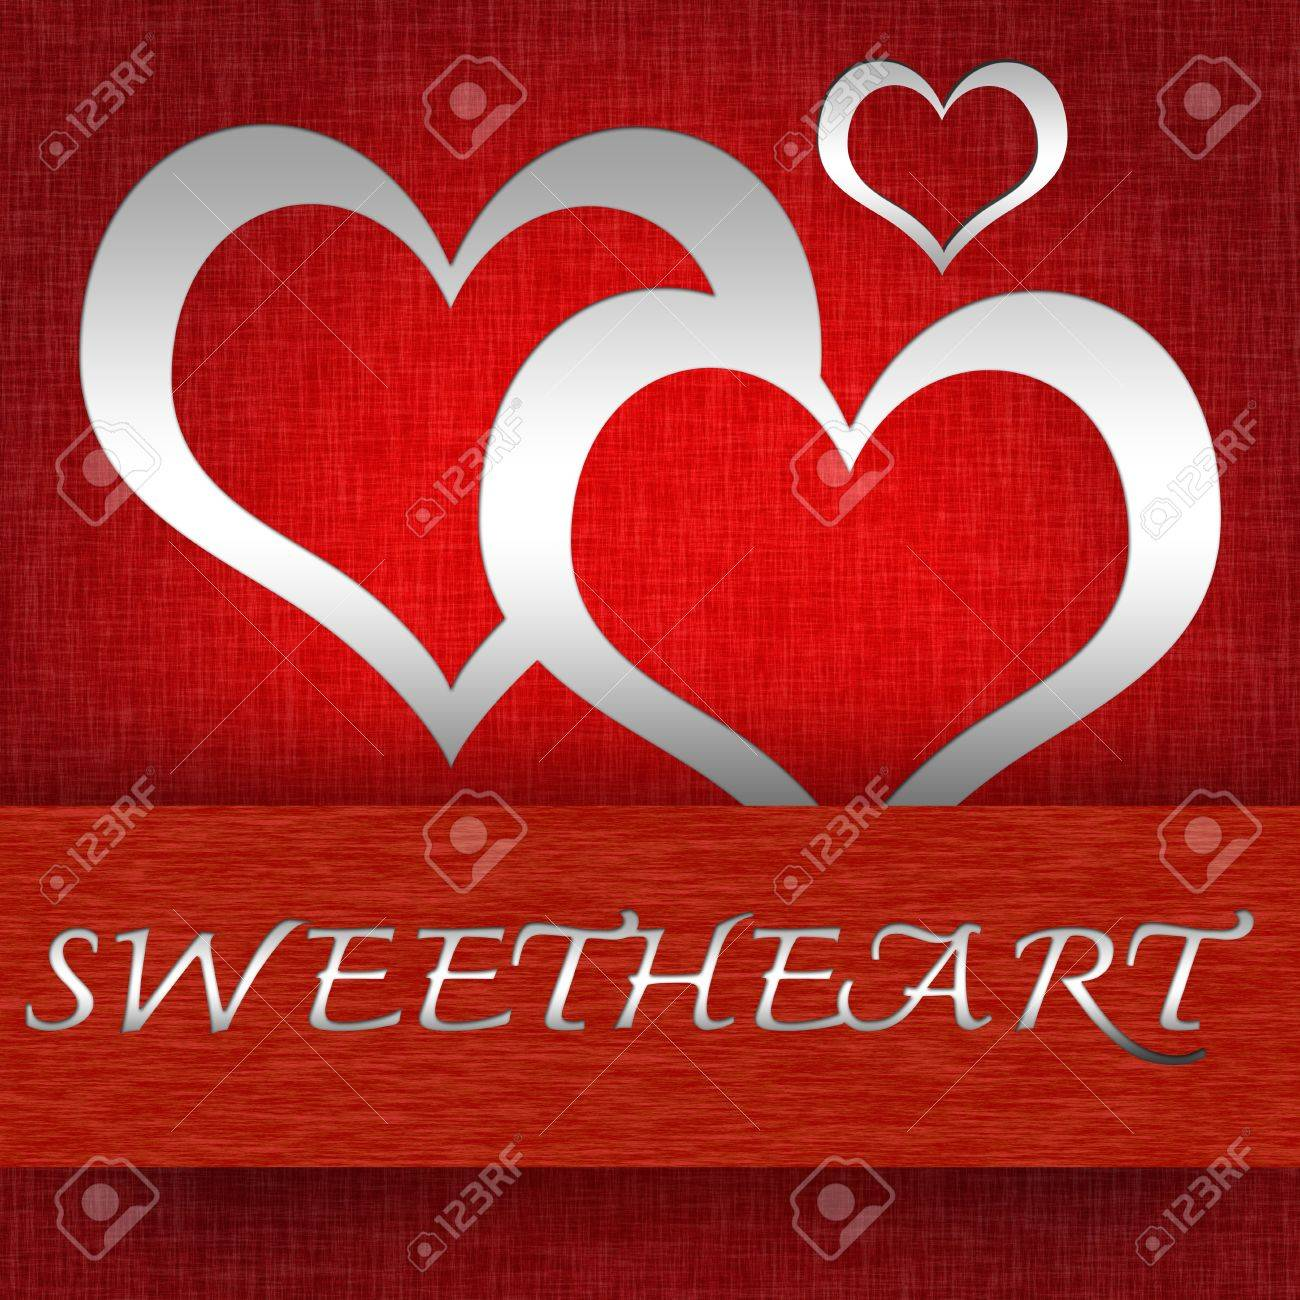 Romantic Pop Up Card With Silver Heart and Sweetheart Text on Red Grunge Background Stock Photo - 17455132